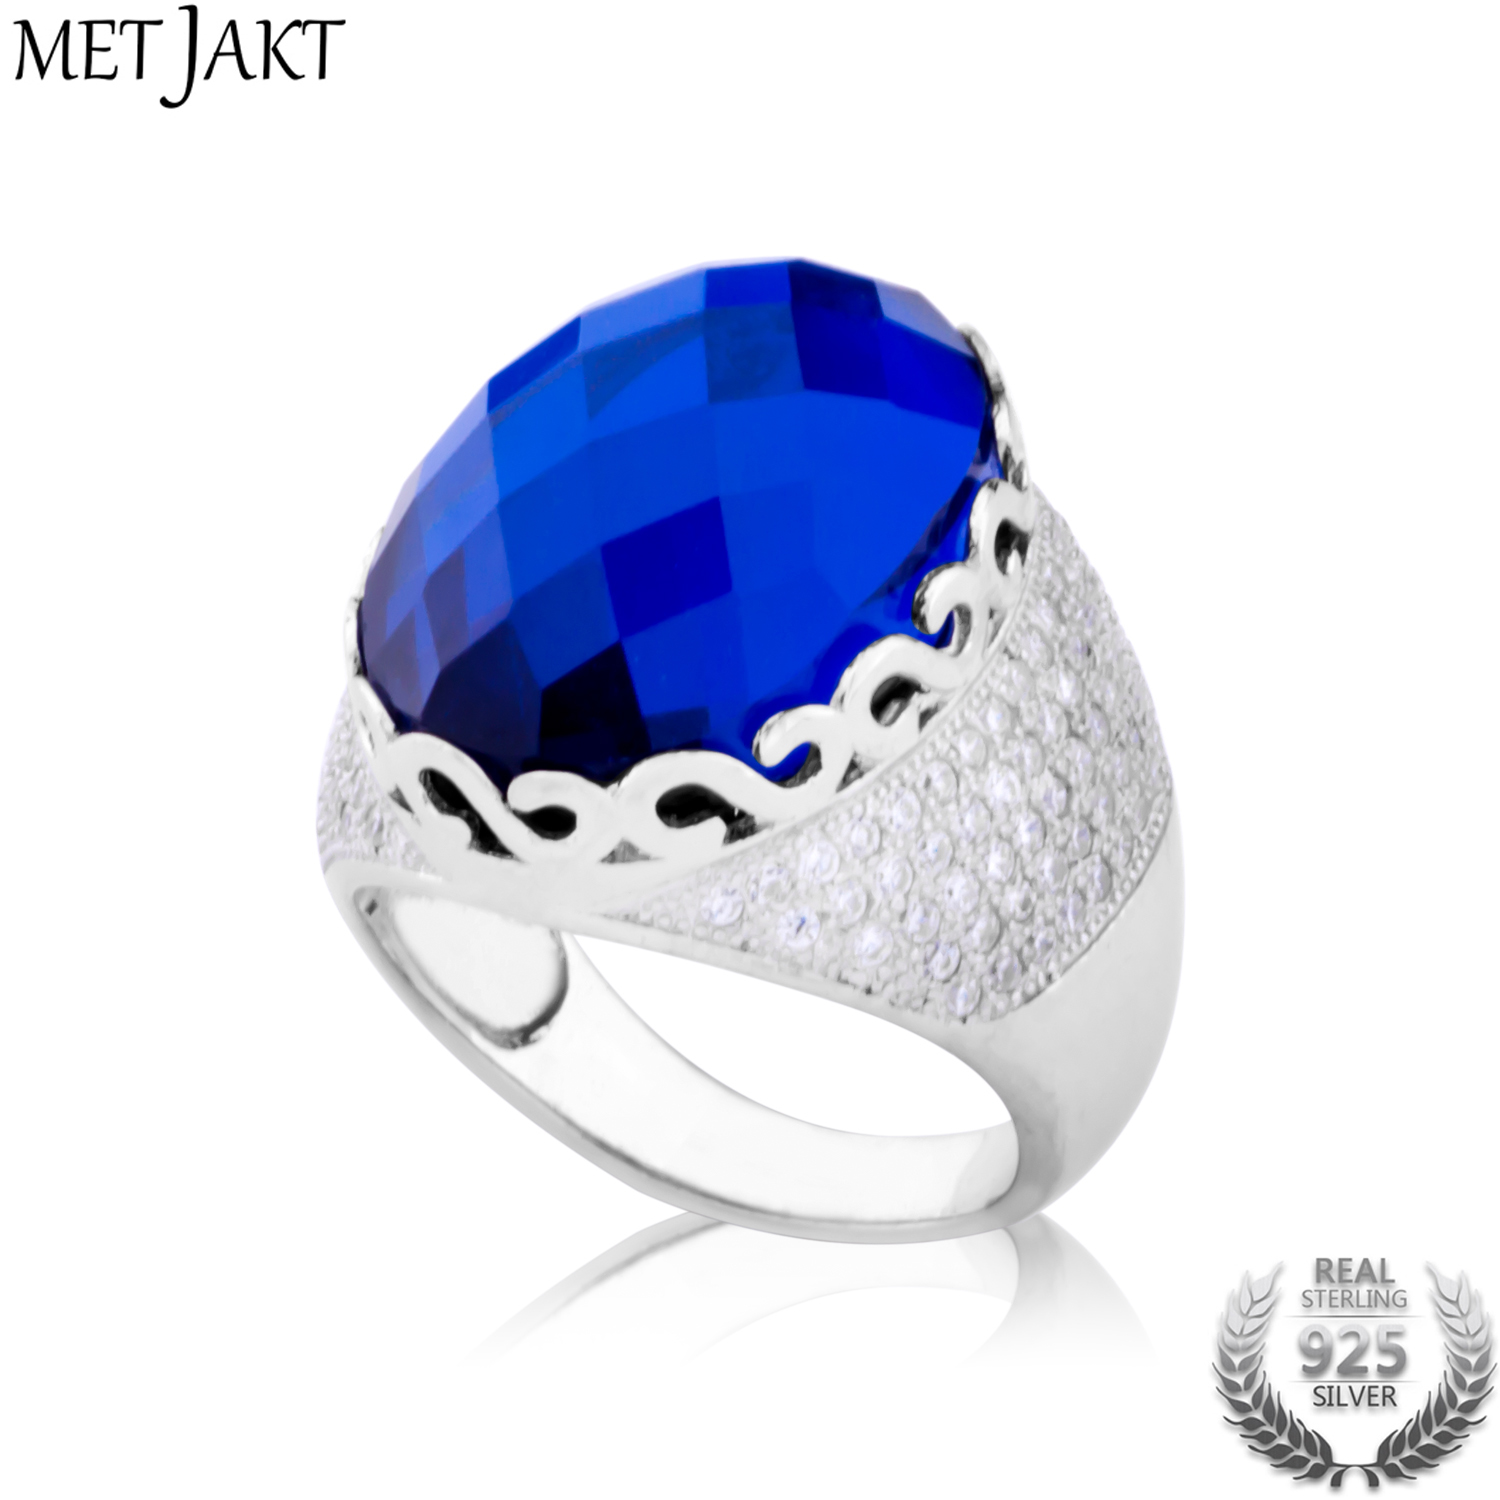 MetJakt Vintage Sapphire Ring for Women Handmade Checkerboard Cutting Sapphire Solid 925 Sterling Silver Jewelry delicate alloy faux sapphire geometric ring for women